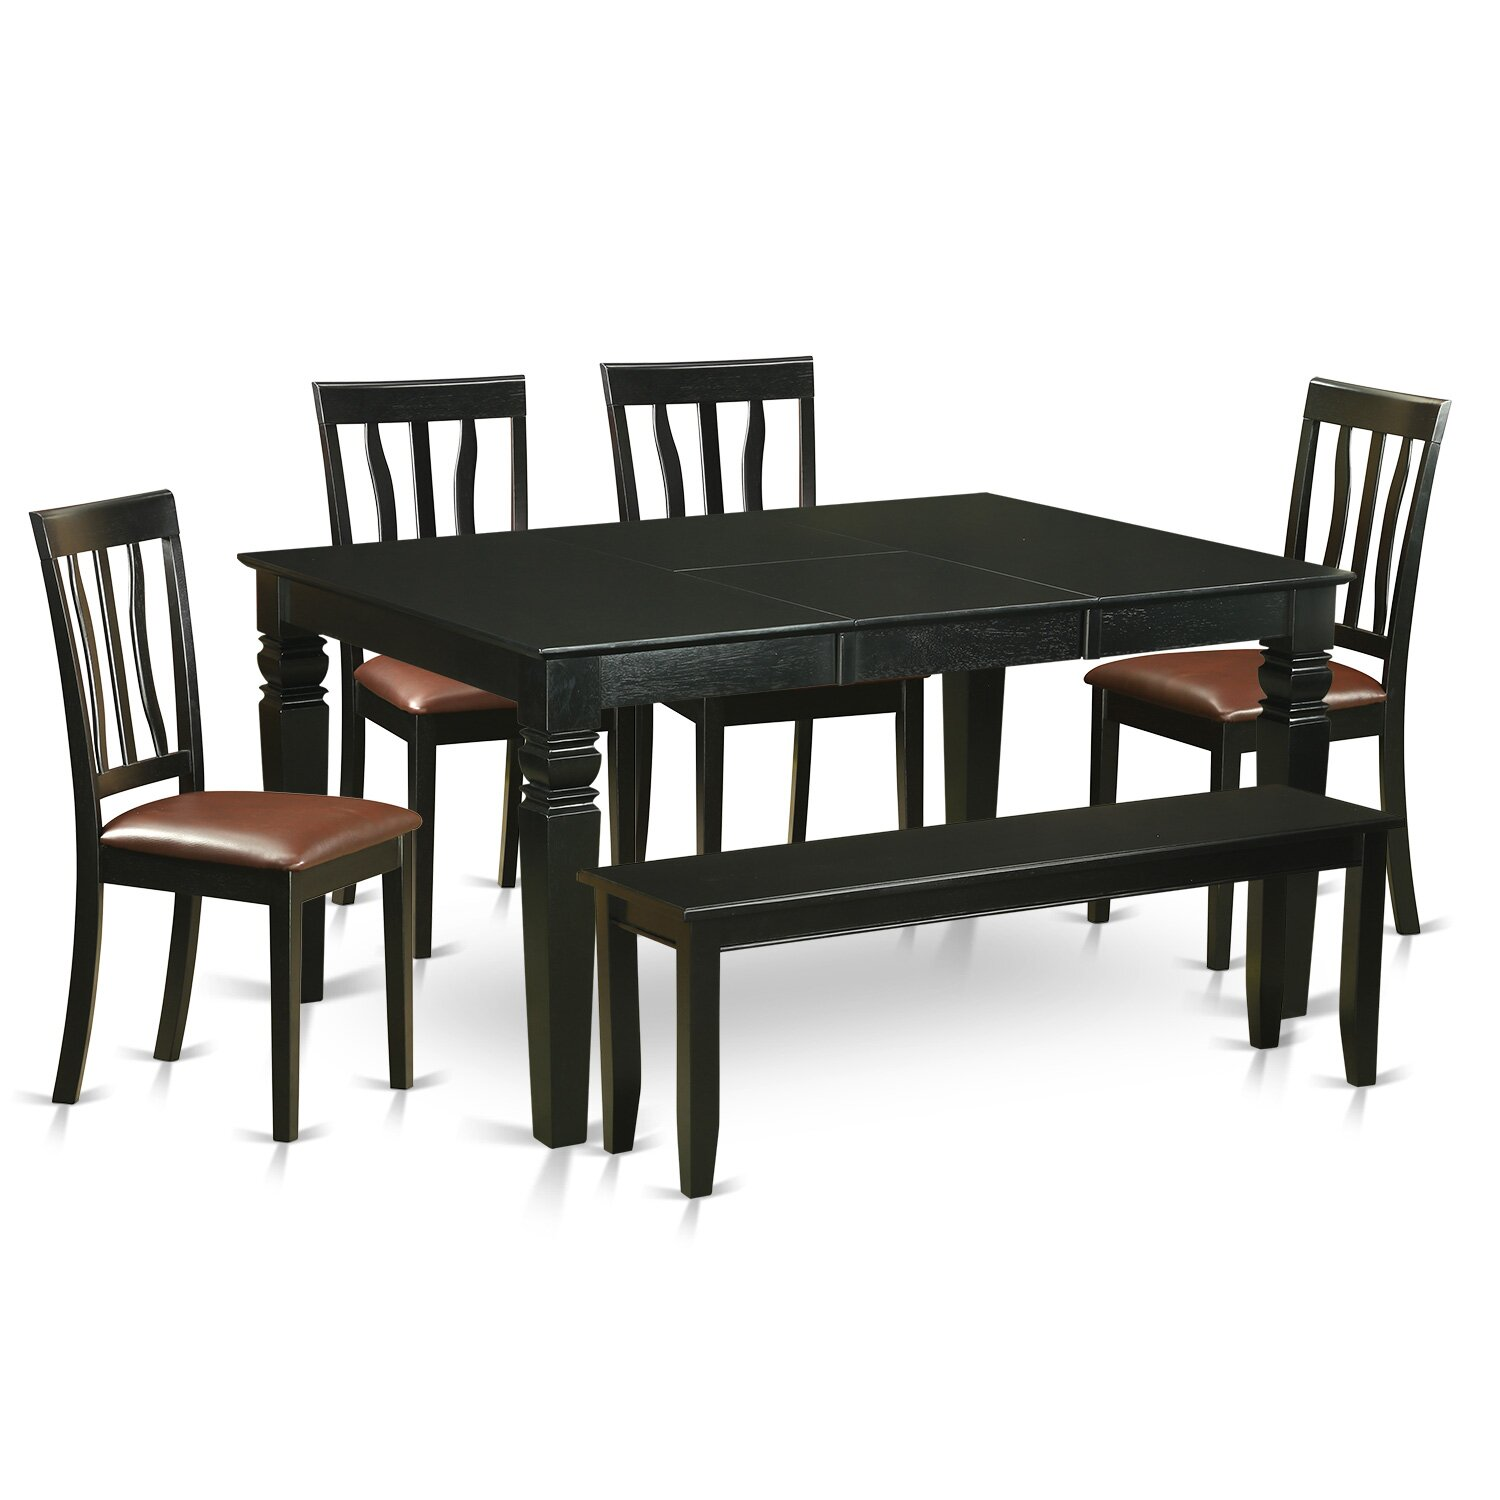 Wooden importers weston 6 piece dining set wayfair for Breakfast sets furniture